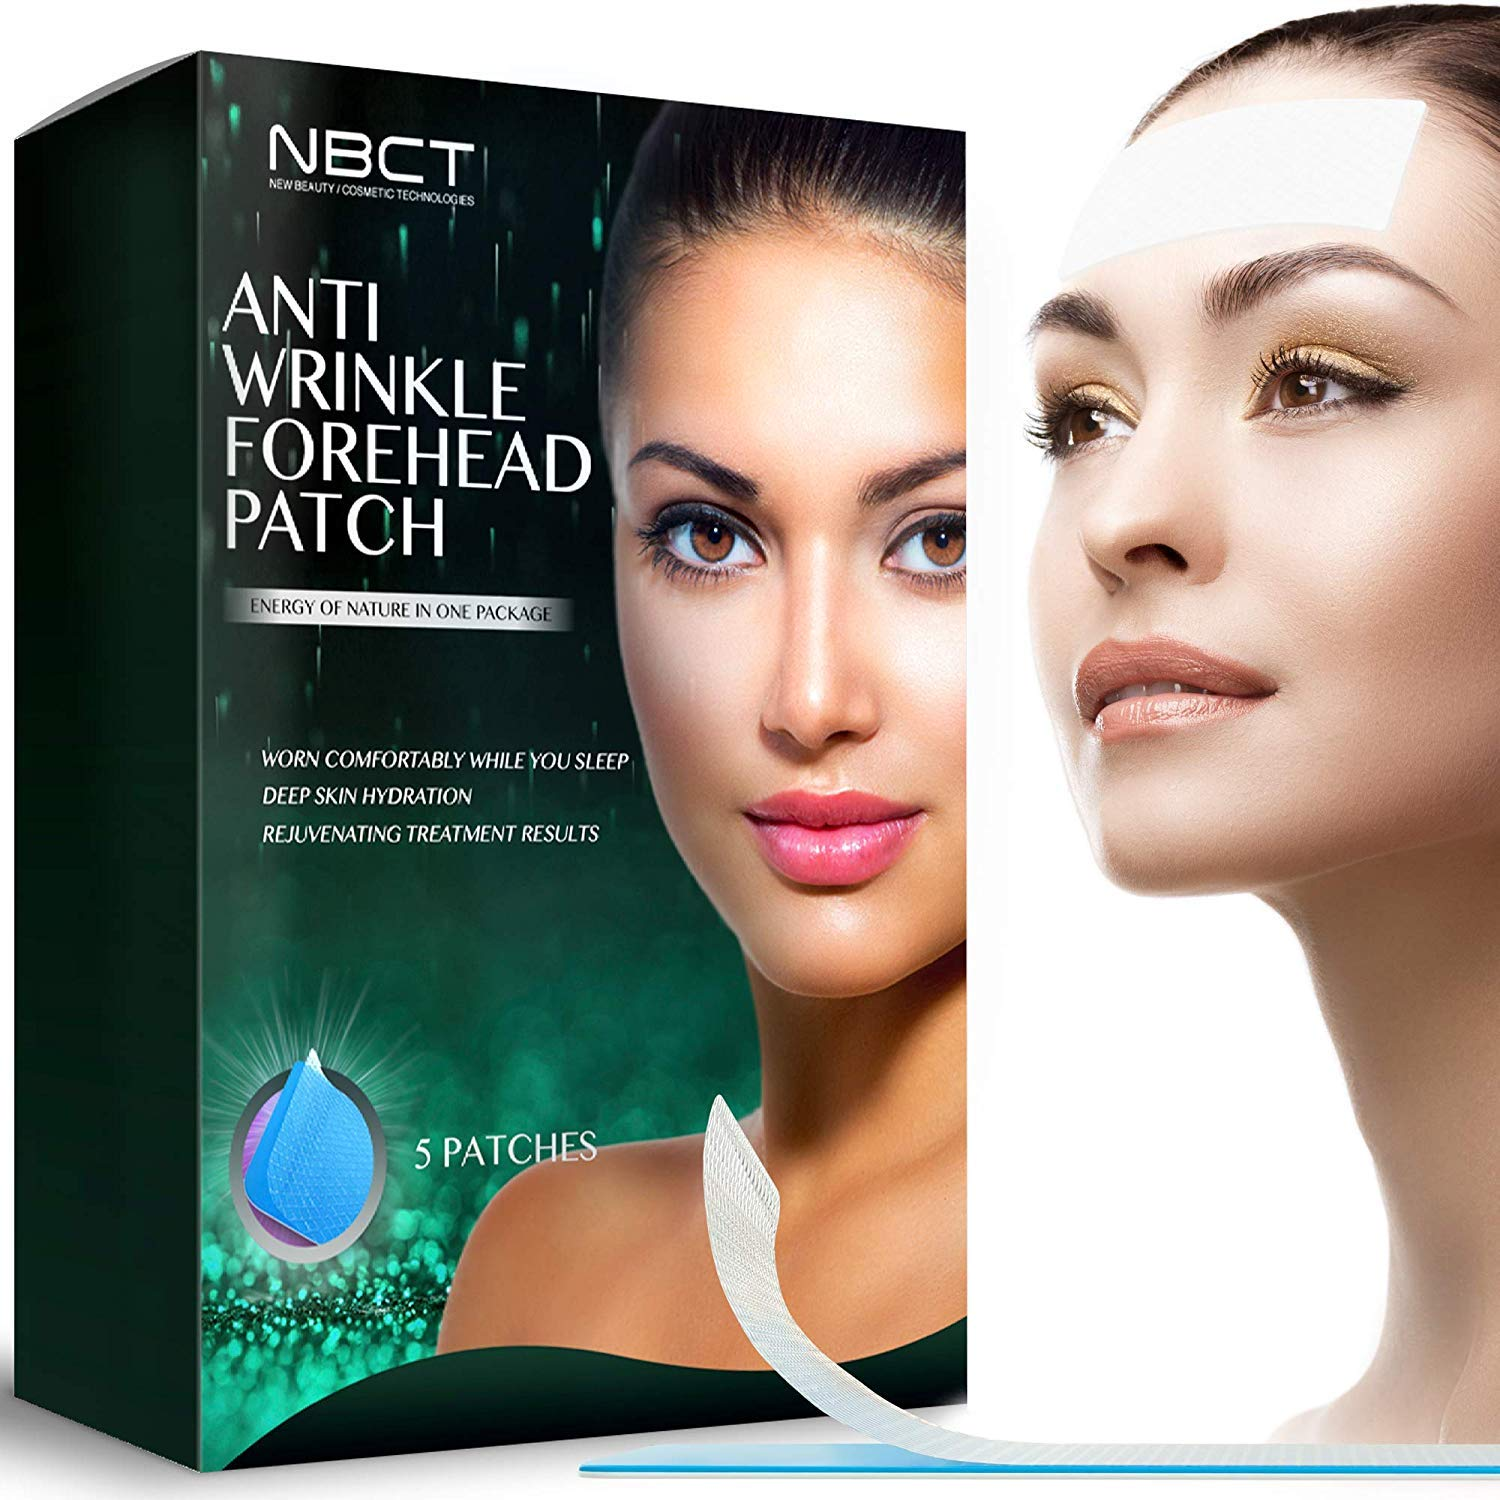 Forehead Anti-Wrinkle Patch | Overnight Smoothing | Lifting & Hydrating Silicone Patches | Antiaging and Antiwrinkle Beauty Mask - 5 strips by NBCT